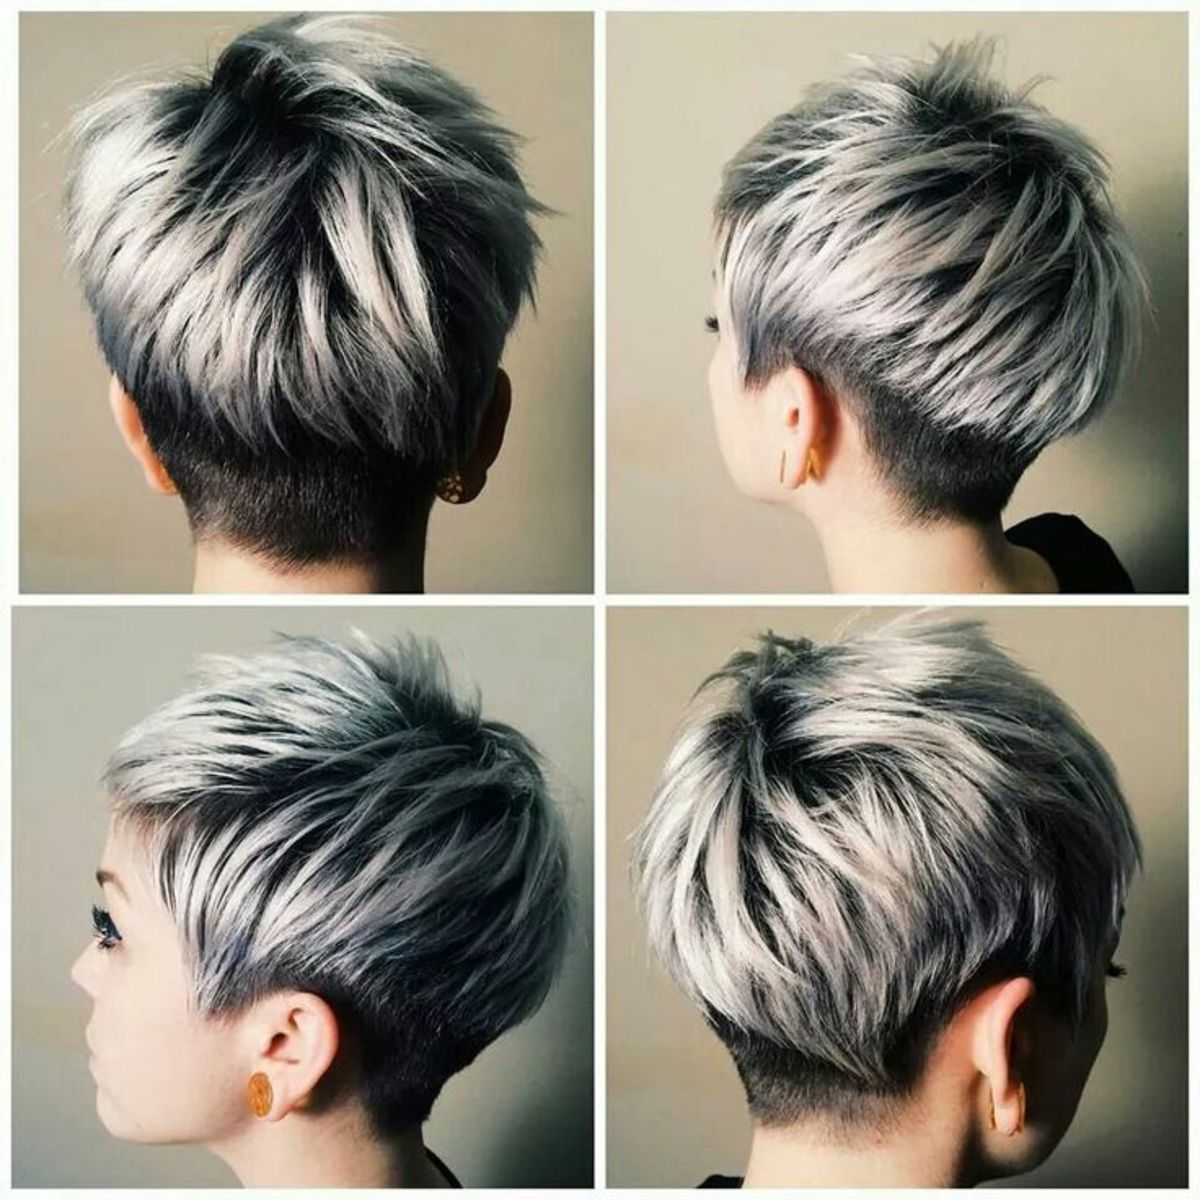 Diy hair 8 ways to rock gray hair bellatory 2 solutioingenieria Image collections